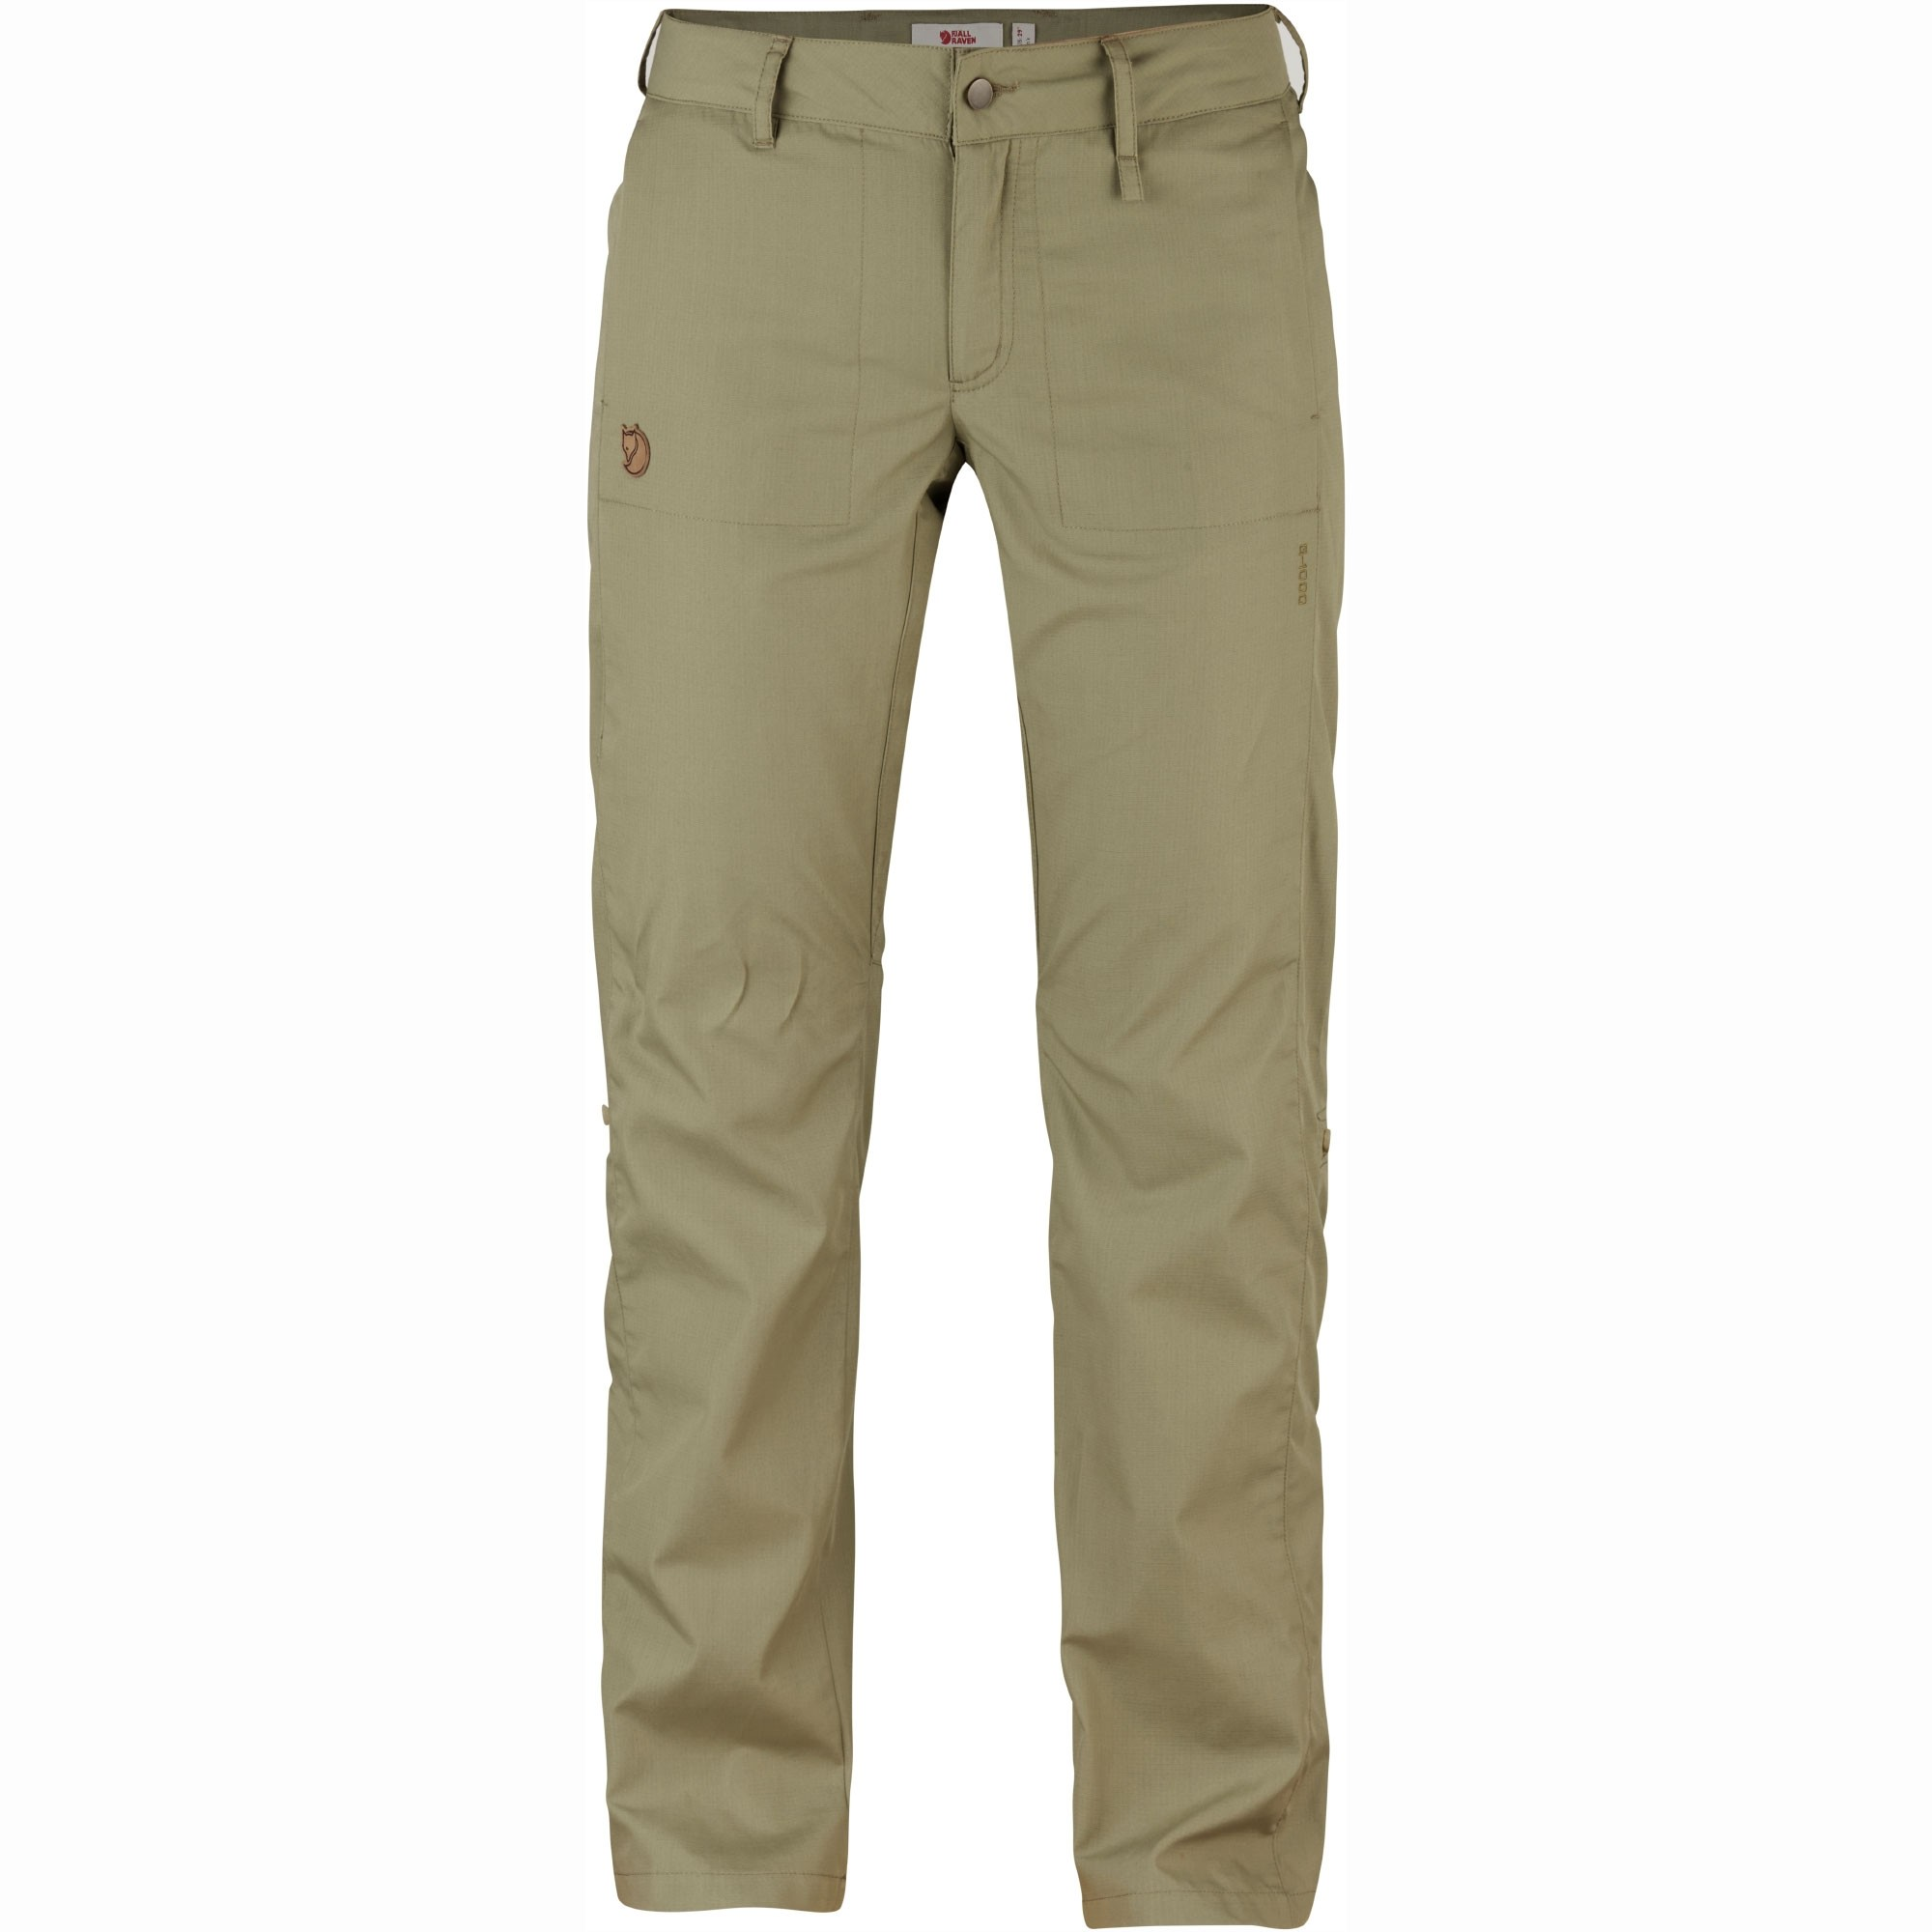 Fjallraven Abisko Shade Women's Trousers 89810 - Savanna